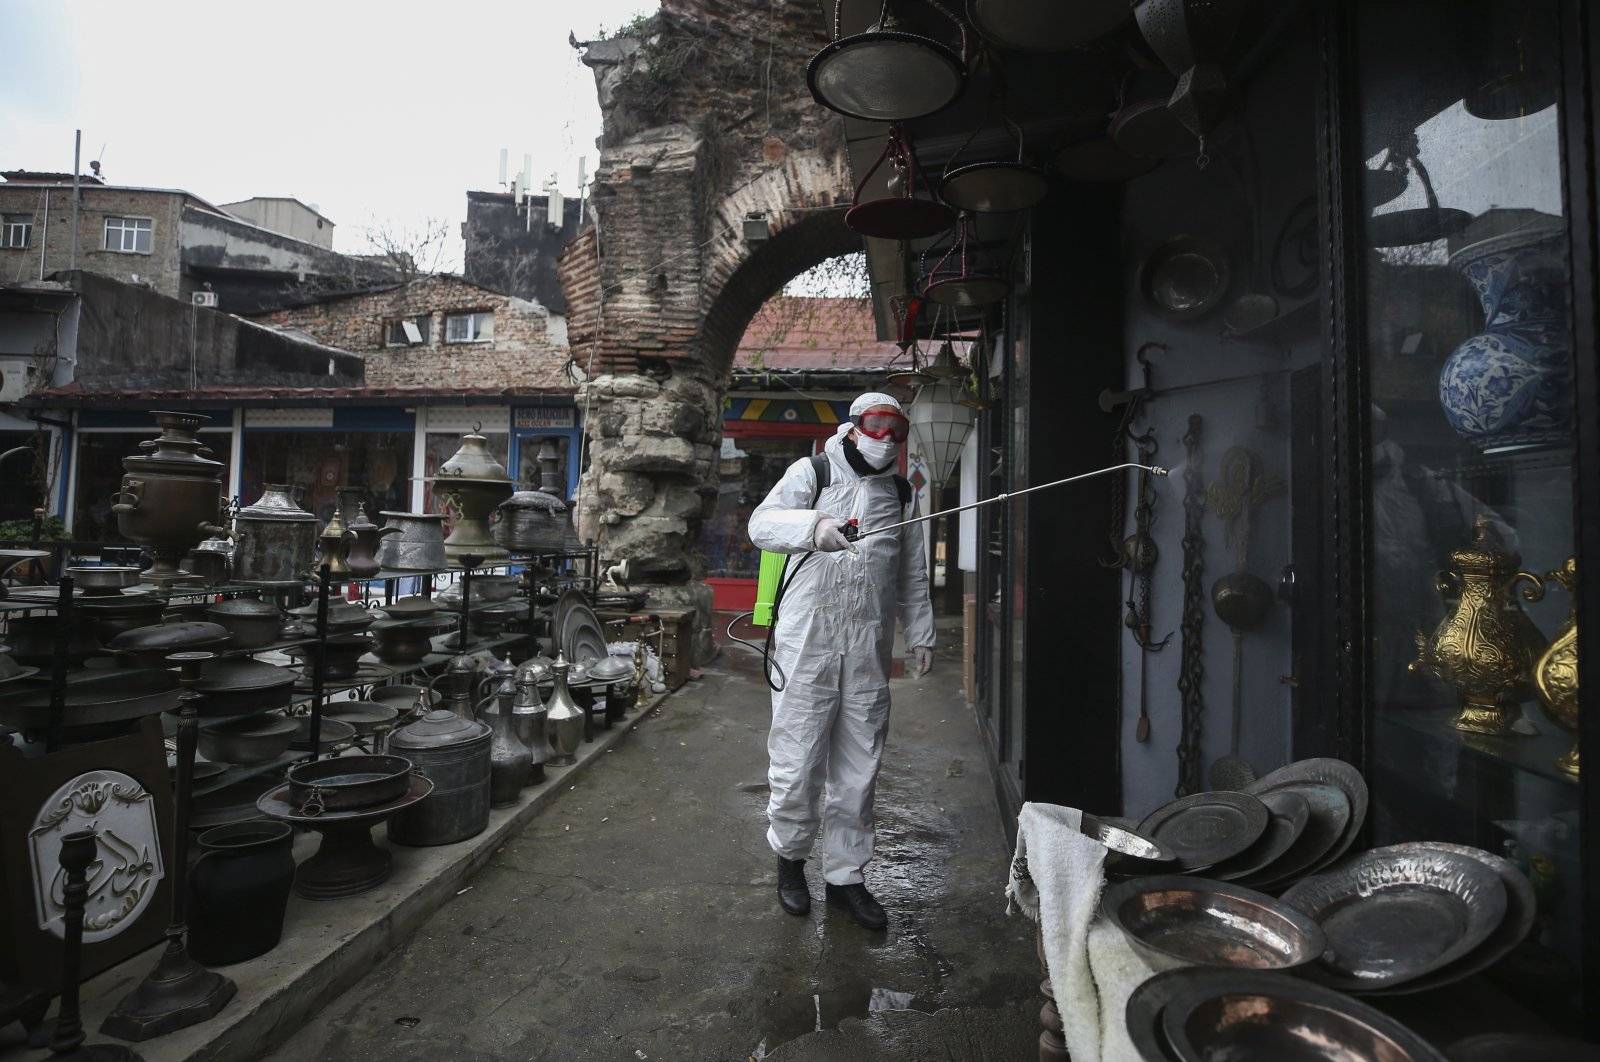 A municipality worker wearing a protective suit sprays disinfectant at the iconic Grand Bazaar in Istanbul, one of the city's main tourist attractions, that shut down amid the coronavirus outbreak, Wednesday, March 25, 2020. (AP Photo)